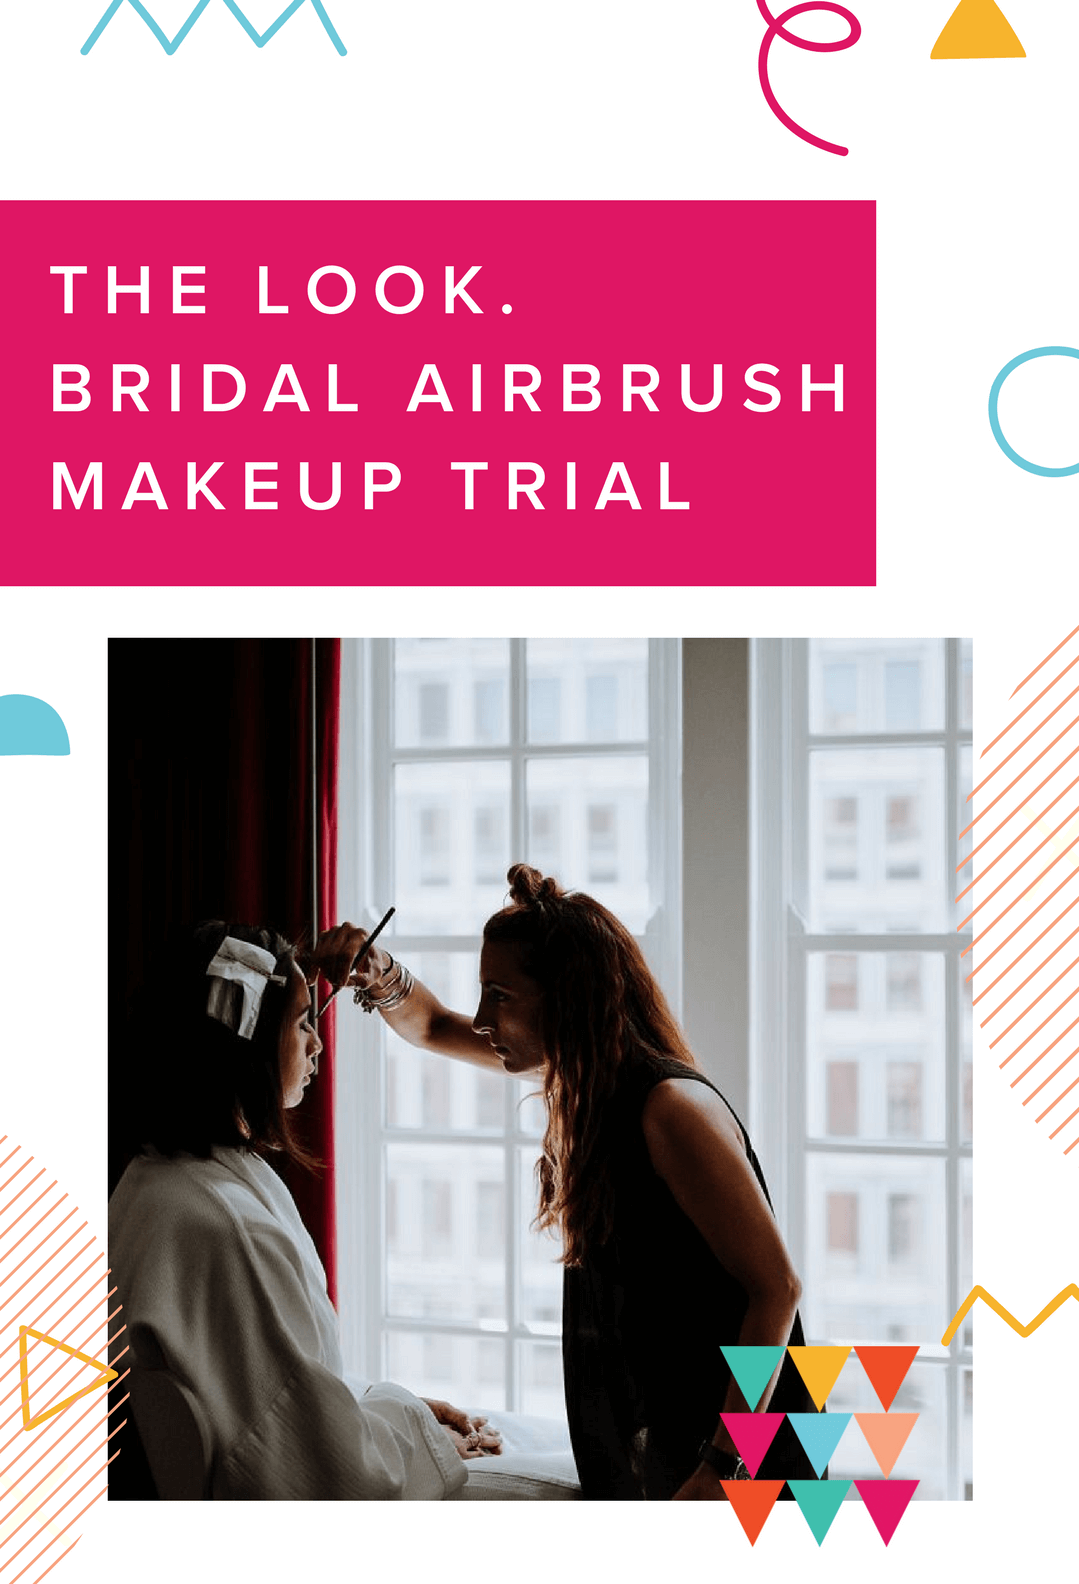 Prize - the look. Bridal airbrush makeup trial